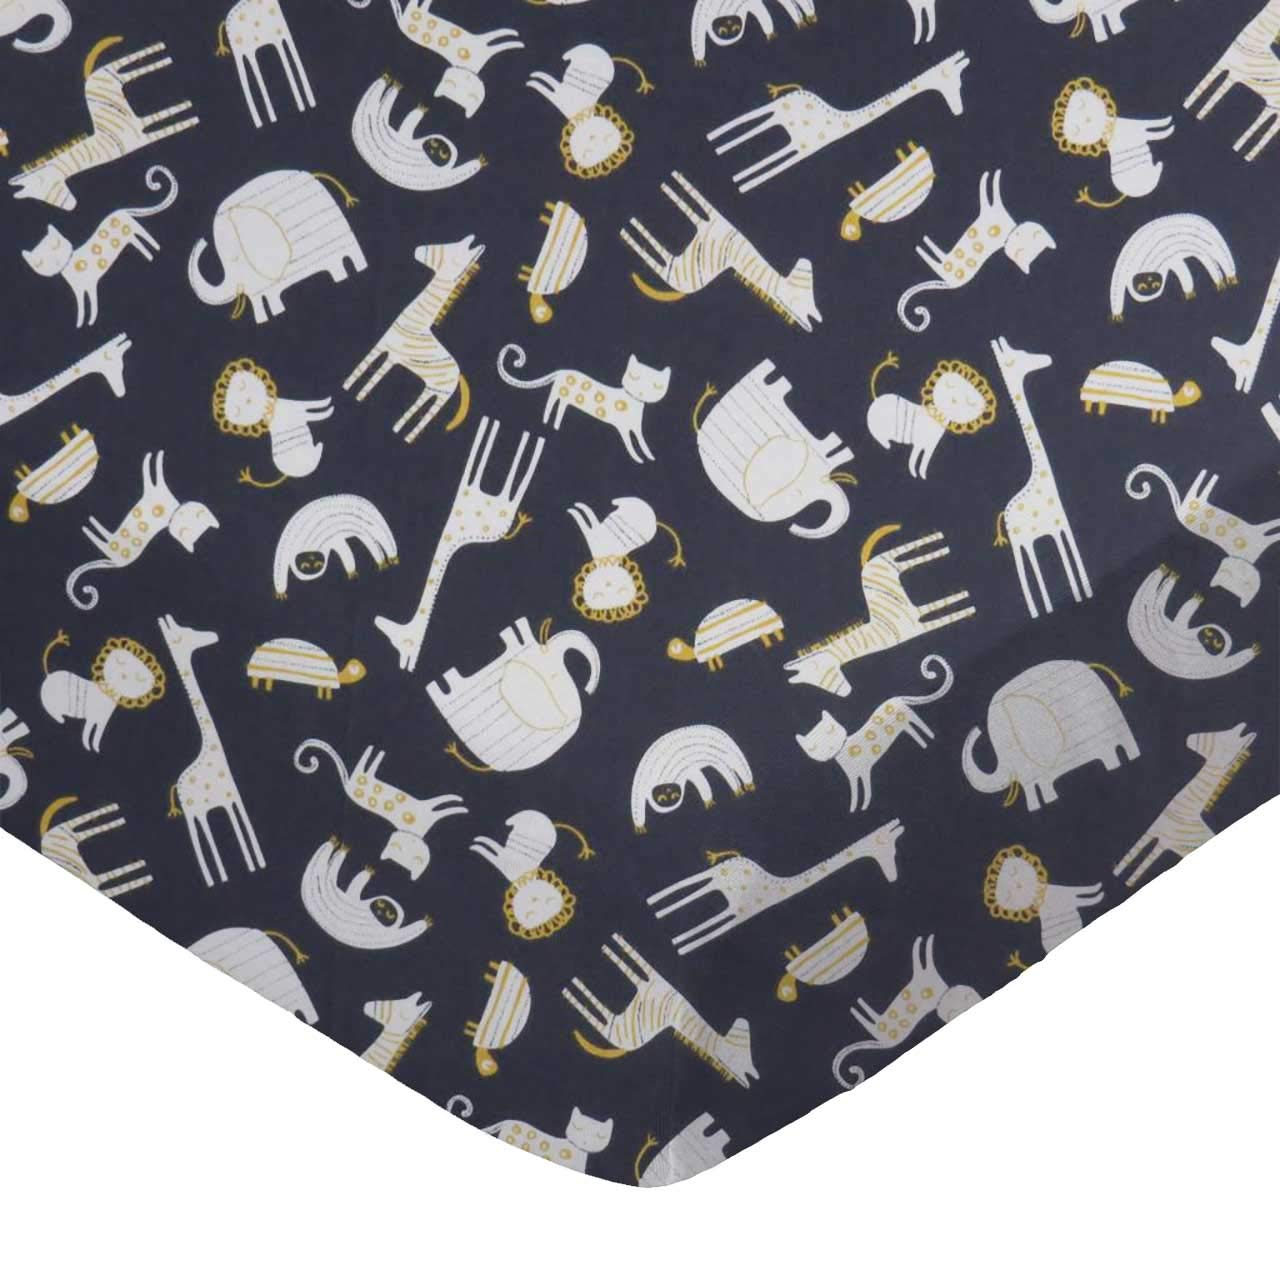 SheetWorld 100% Cotton Percale Extra Deep Fitted Portable Mini Crib Sheet, Modern Safari Animals Dark Gray, 24 x 38 x 5.5, Made in USA PC5-W1144